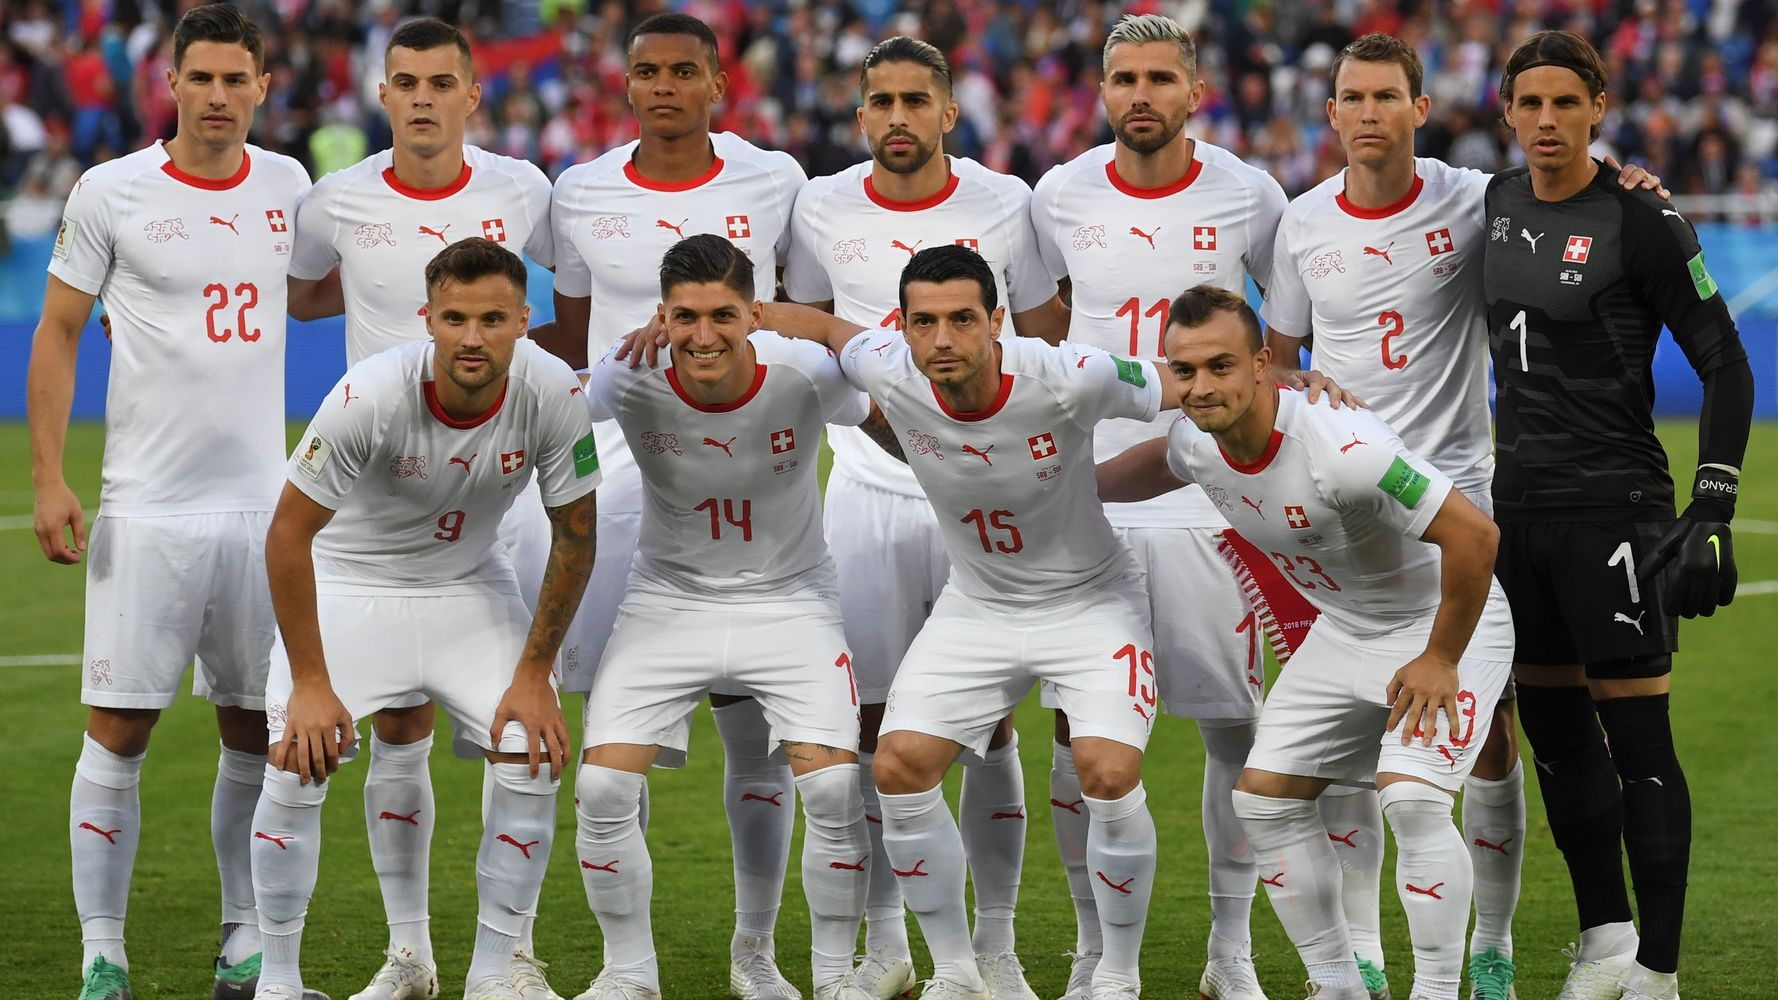 reputable site 5d2e2 476ed Switzerland's World Cup Team Sits At The Heart Of Europe's ...